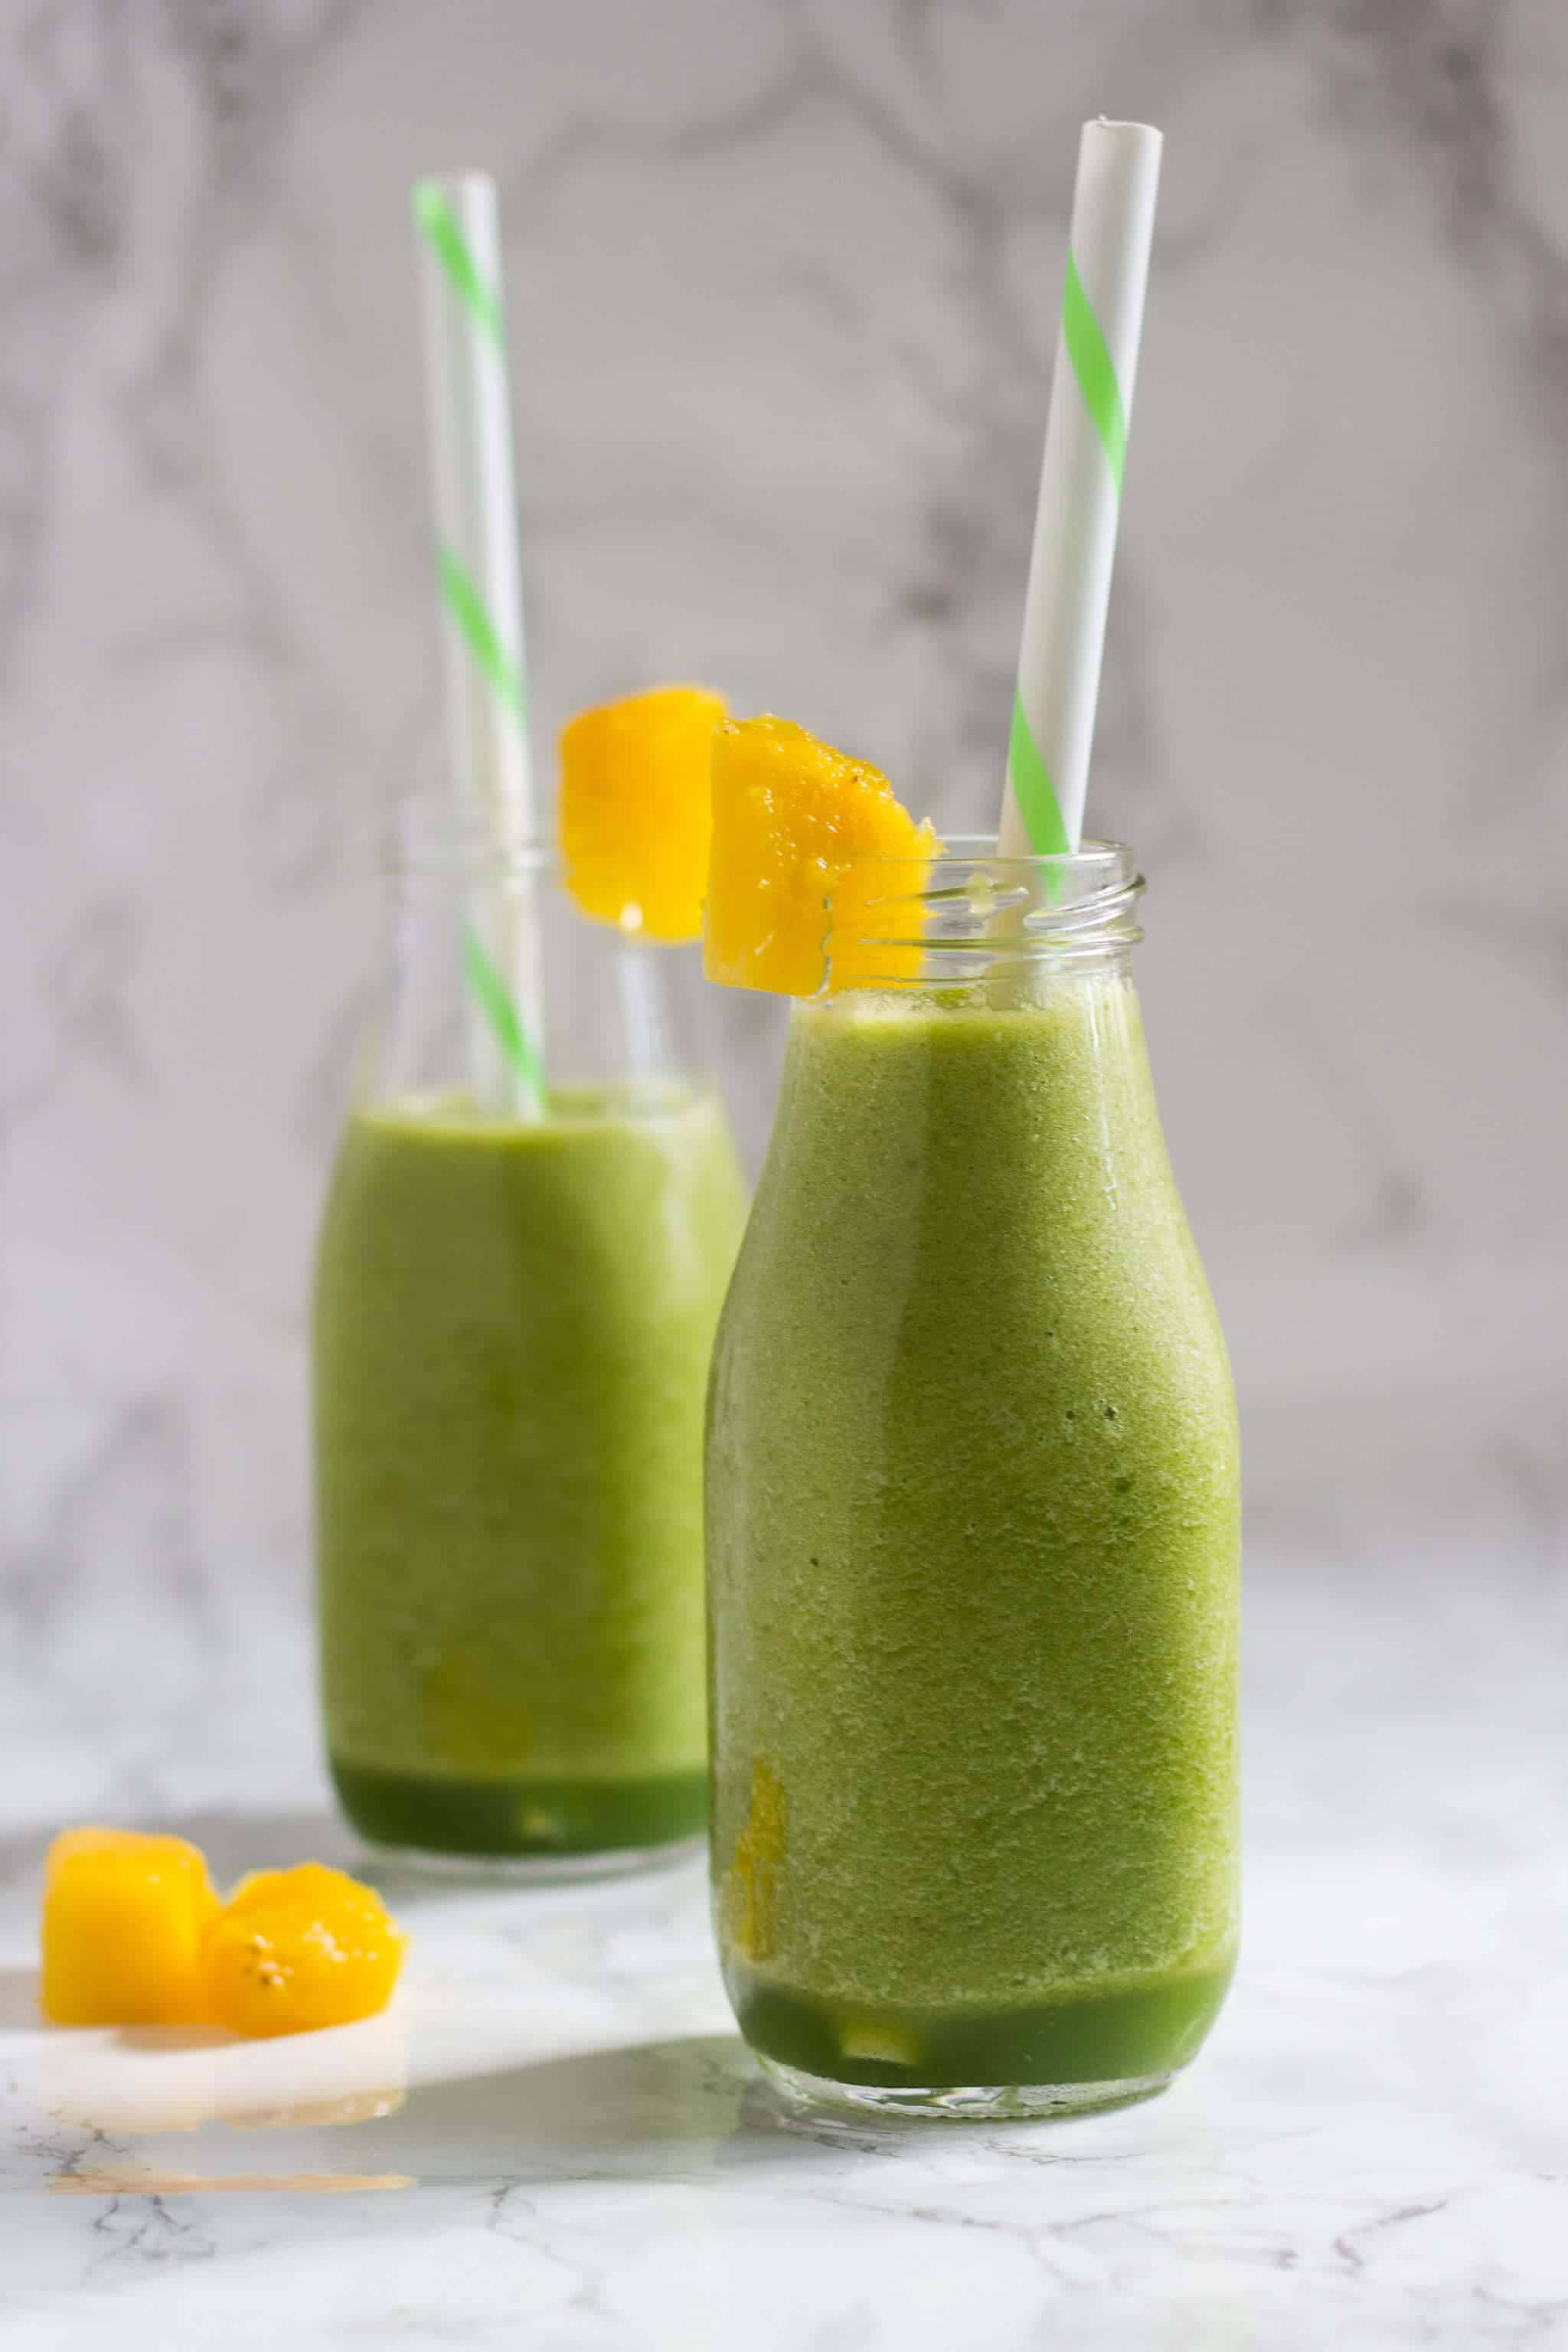 This Healthy Green Tea Smoothie is rich in antioxidants and vitamin C without added sugars that will light up your mornings.   nashifood.com